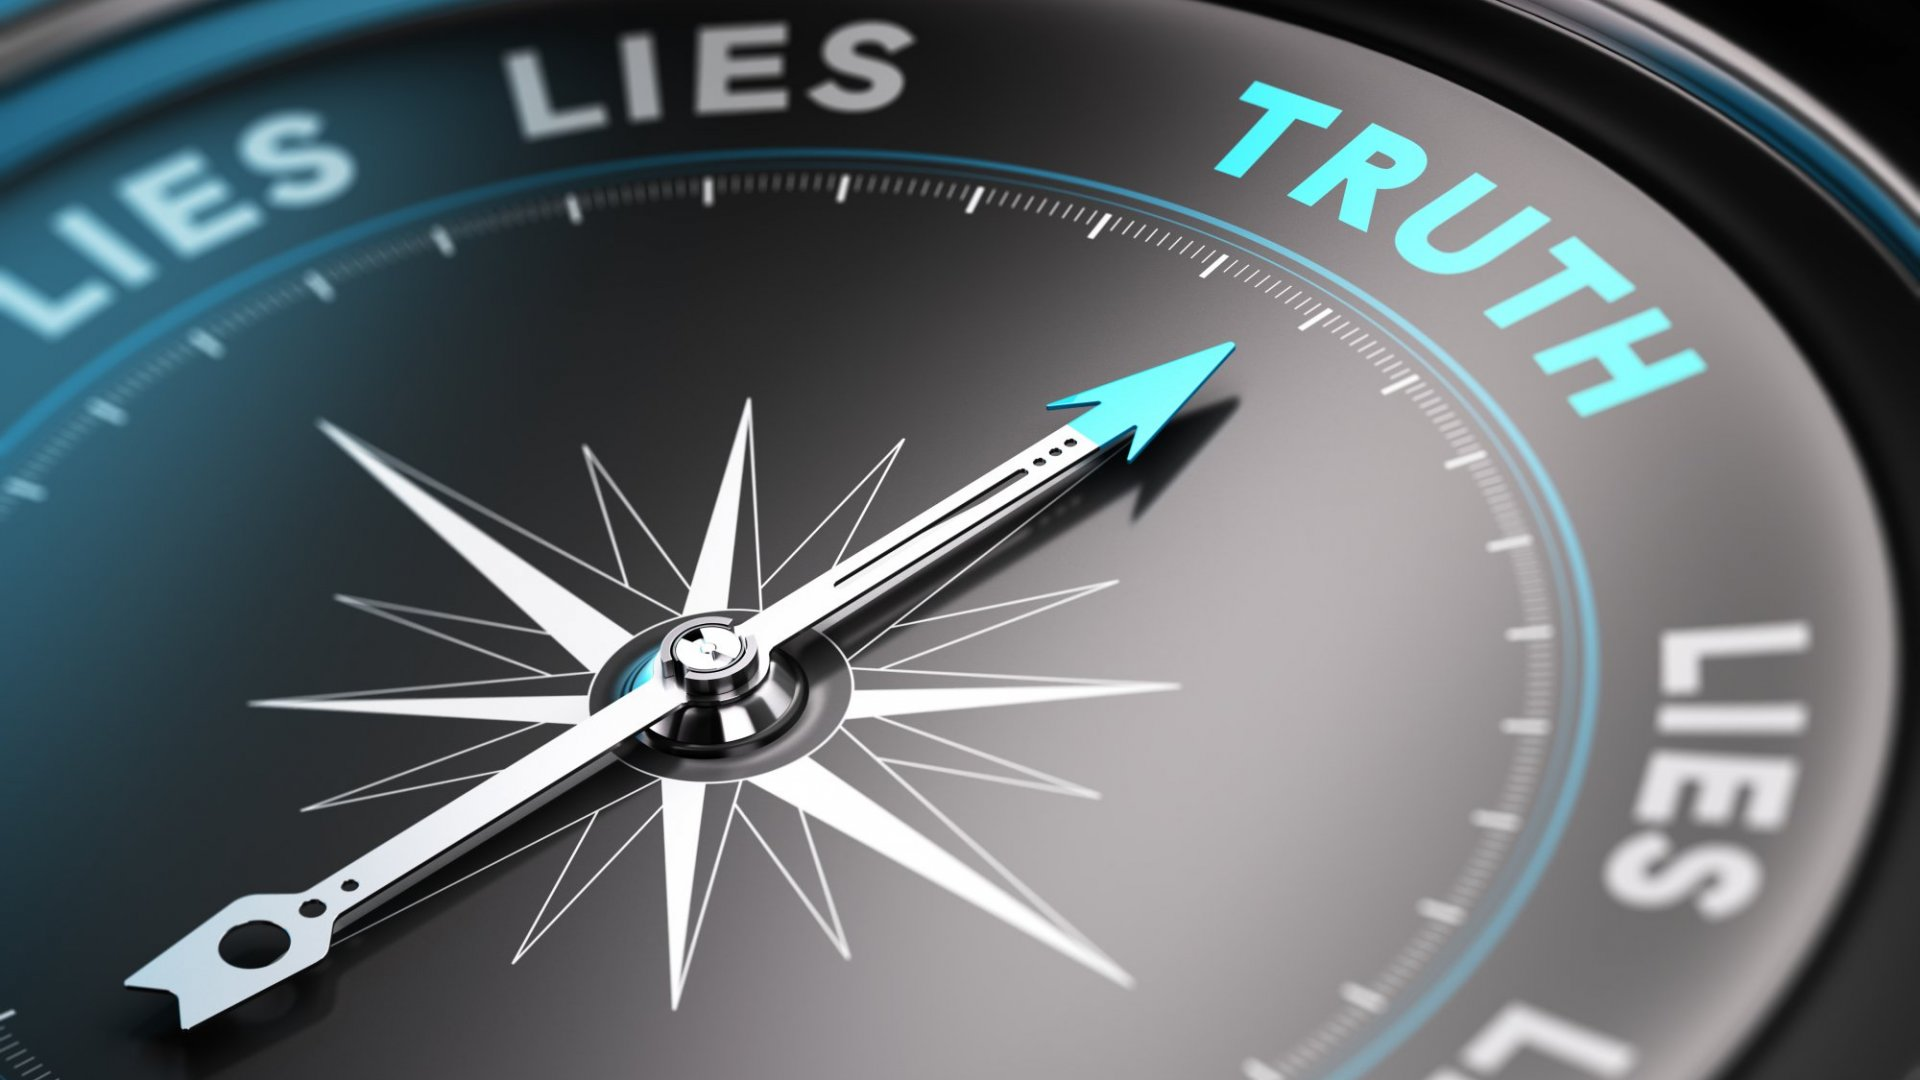 4 Important Rules About Telling the Truth